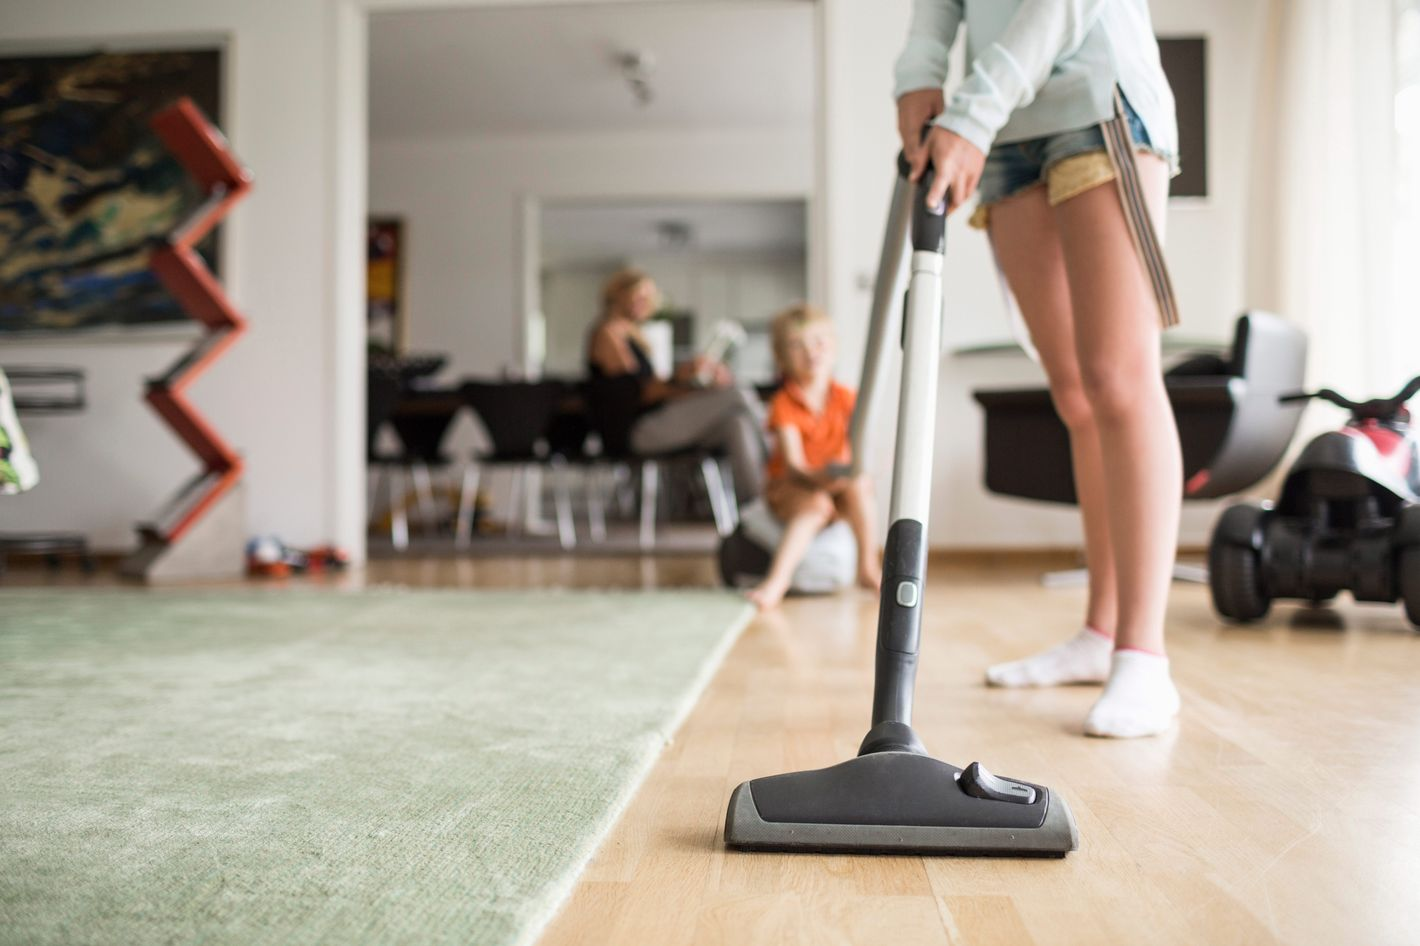 Girls Spend 40 Percent More Time On Chores Than Boys Do